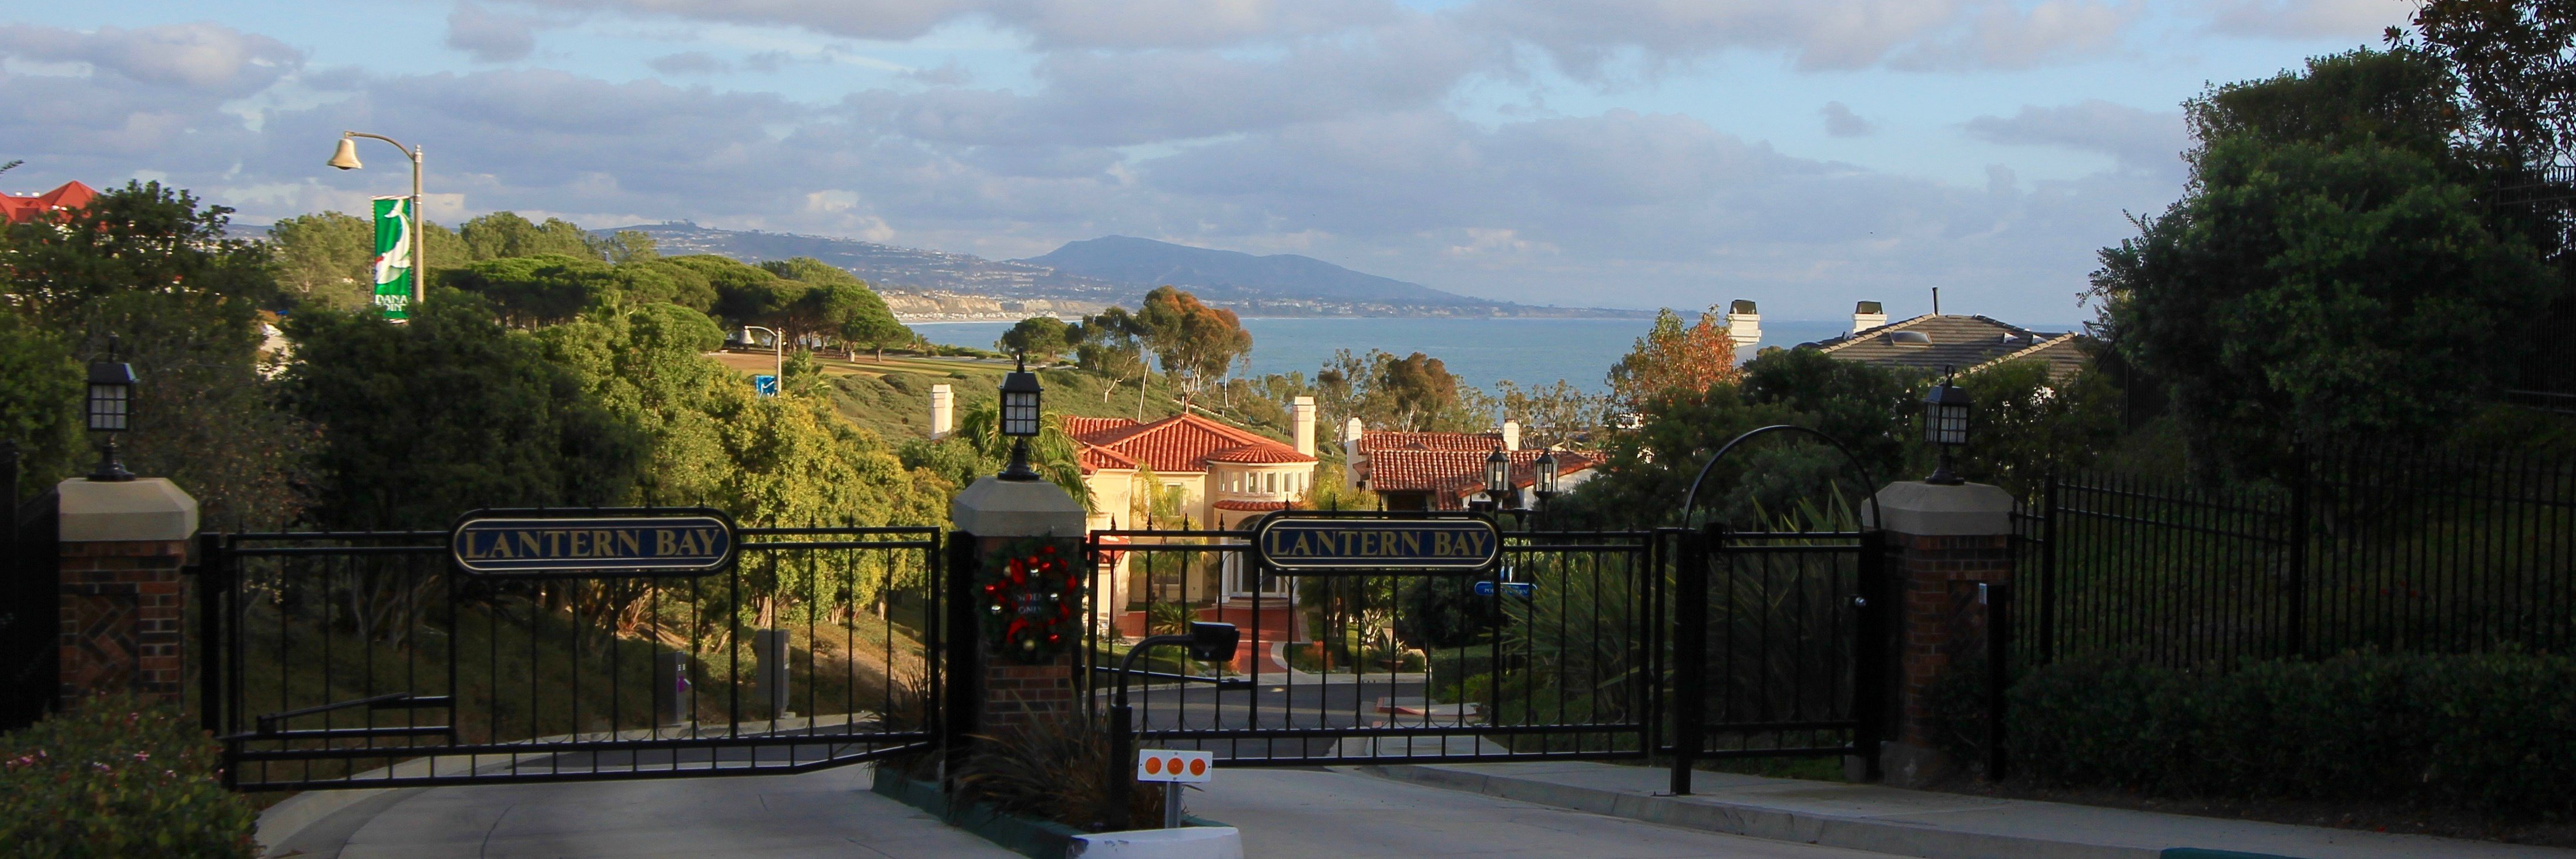 Gates to the entrance of Lantern Bay Estates in Dana Point Ca